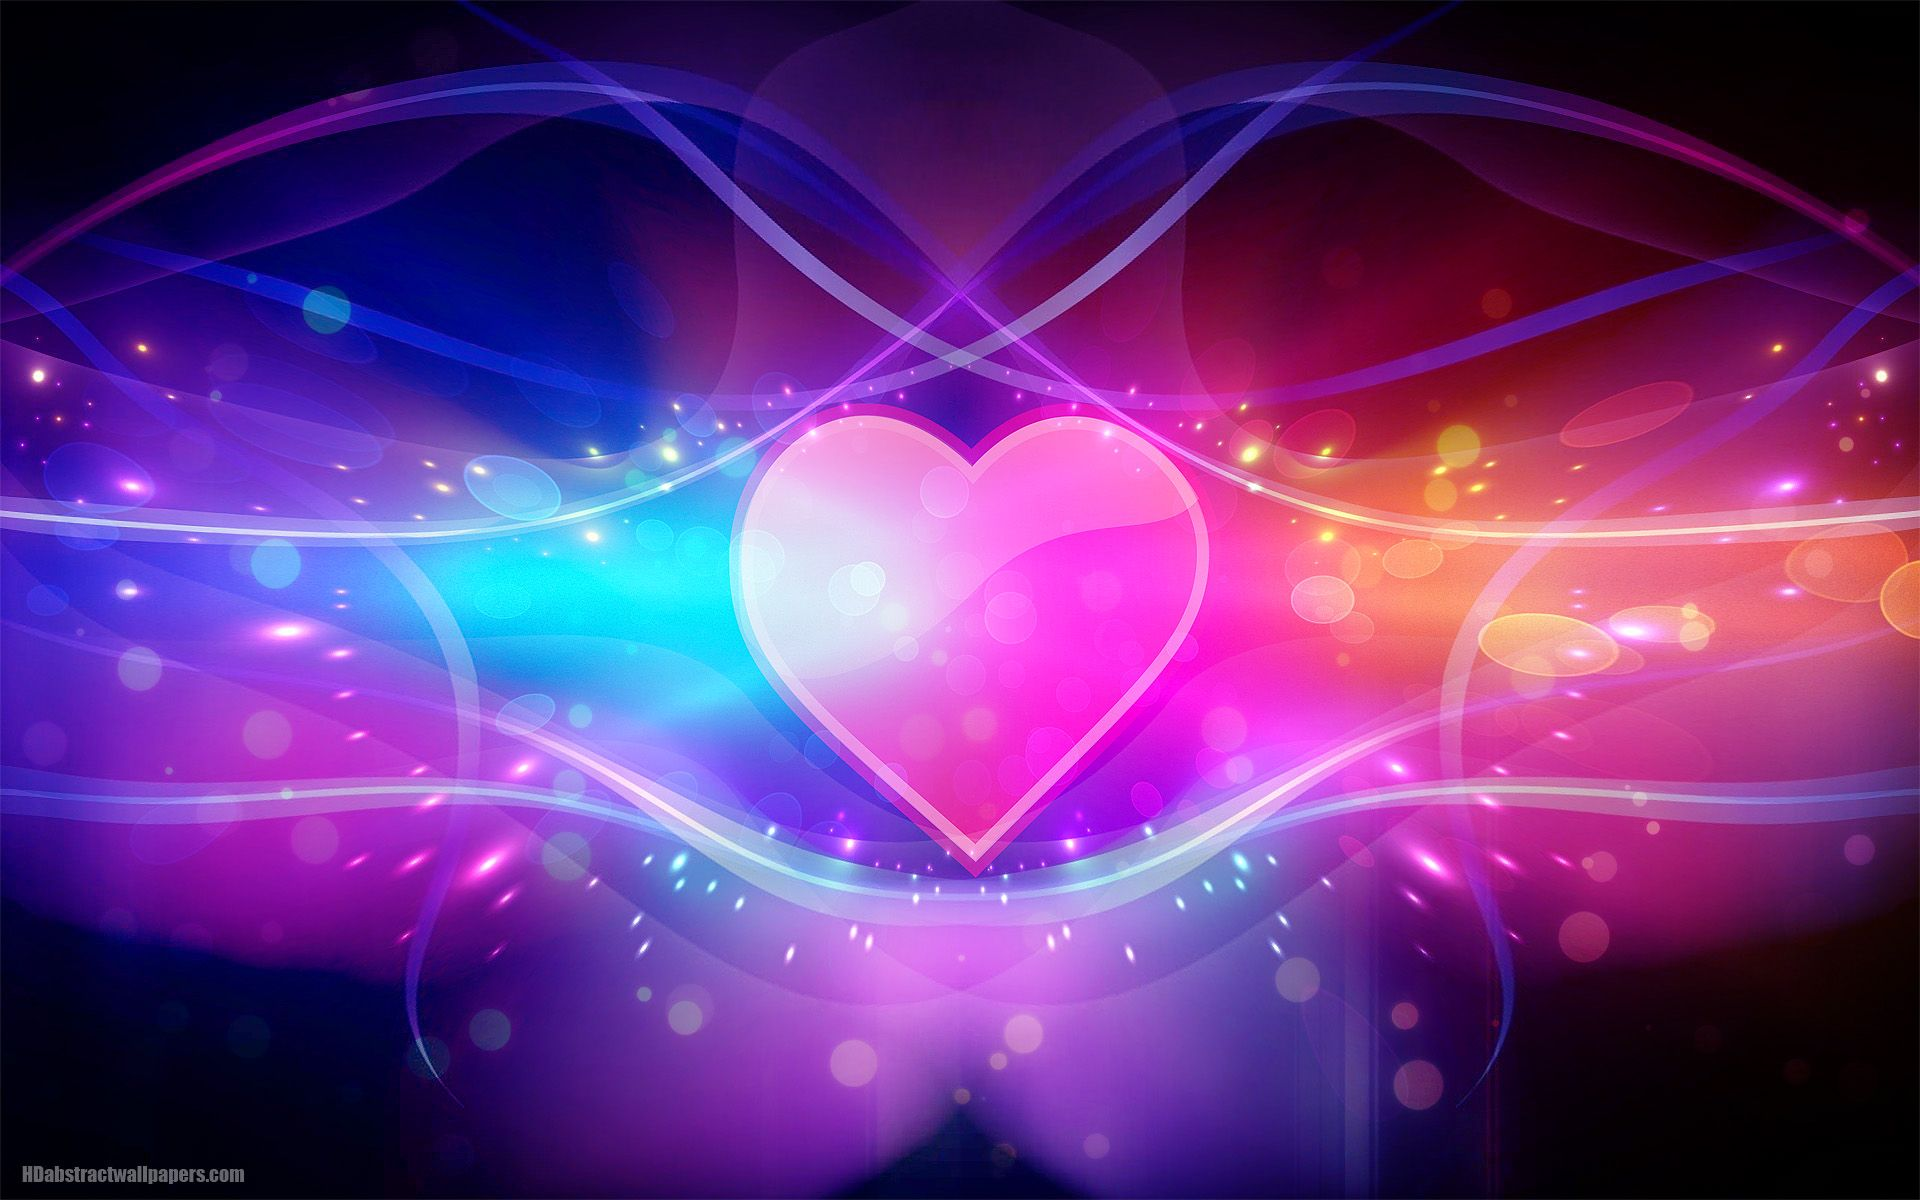 Love End Wallpaper Hd : colorful abstract wallpaper with pink love heart HD Abstract ... Hearts L ve Pinterest ...